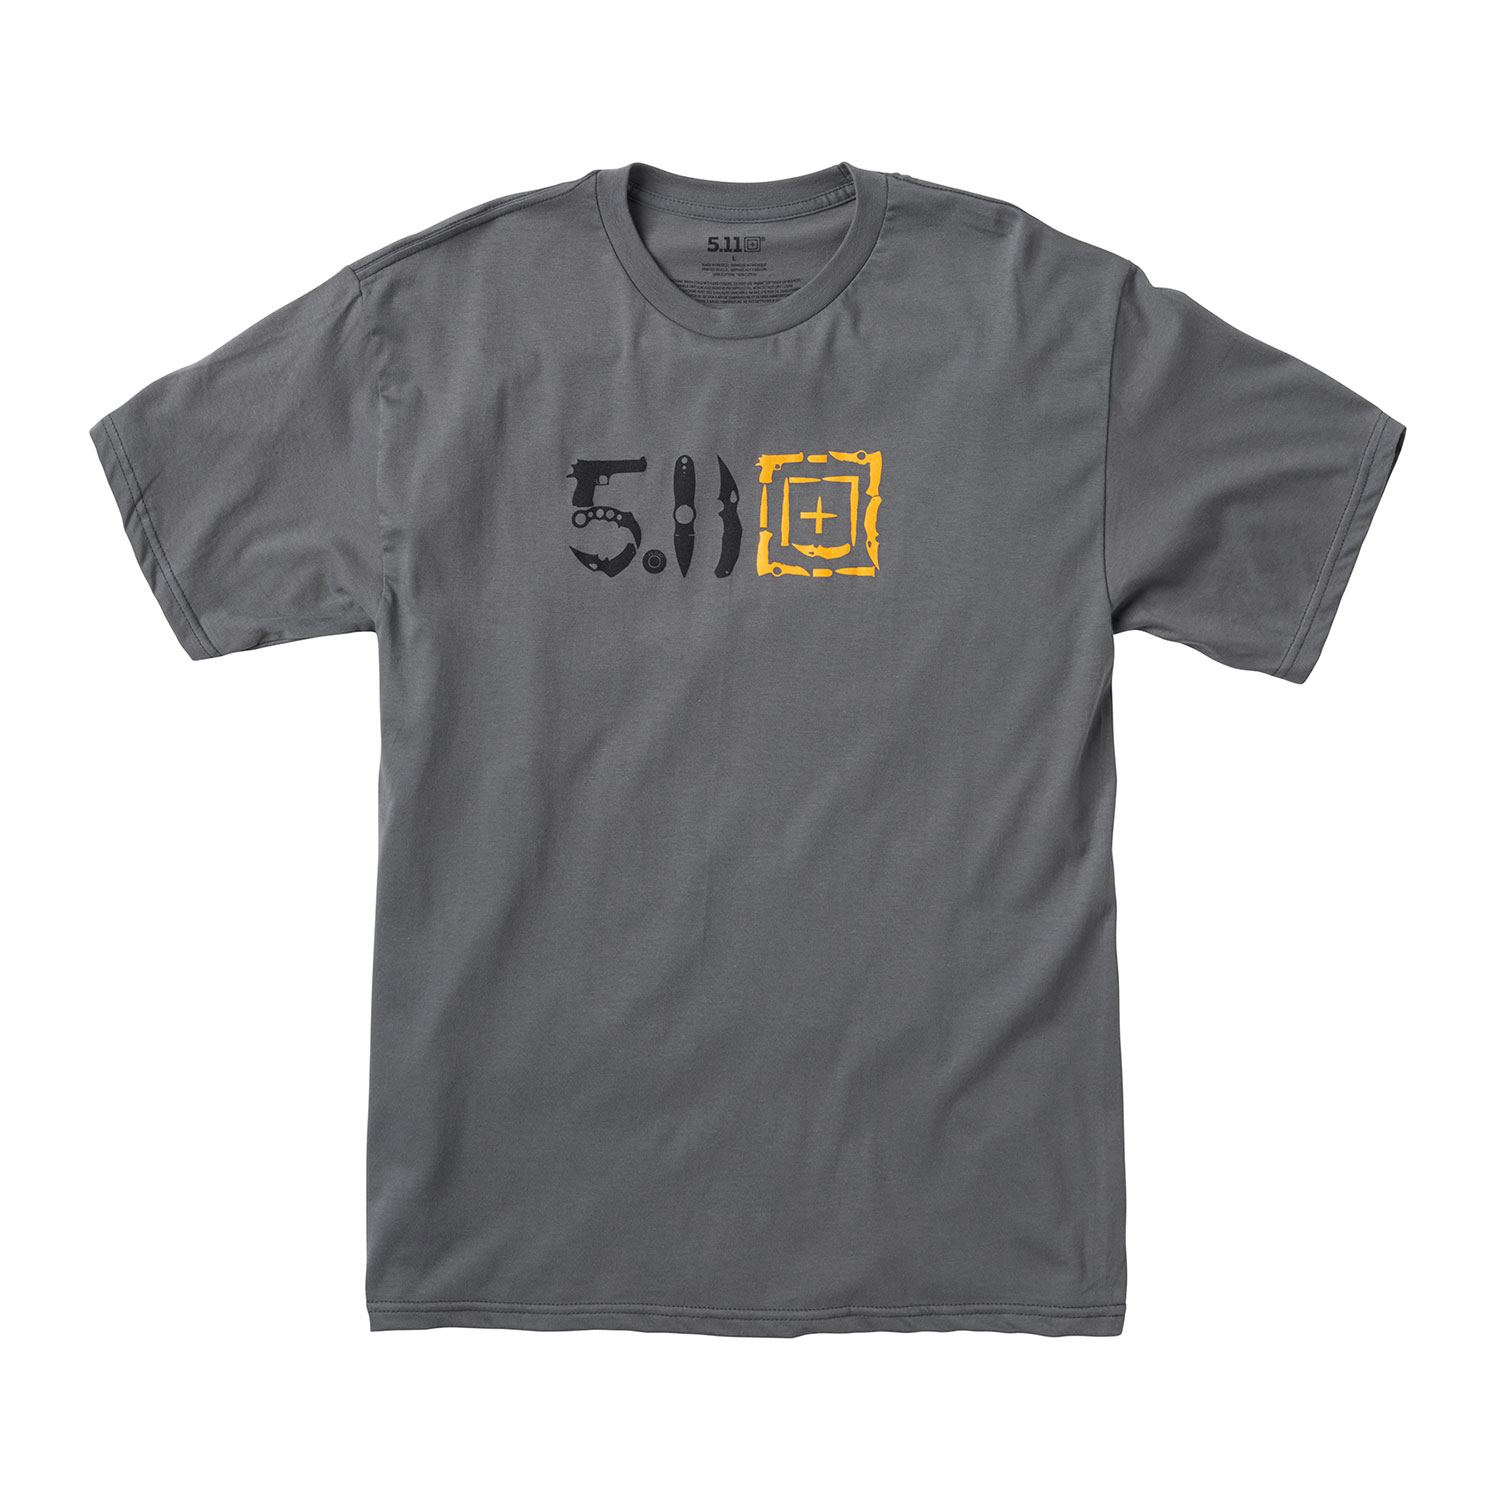 5.11 Tactical Men's Knife Fight Short Sleeve Tee